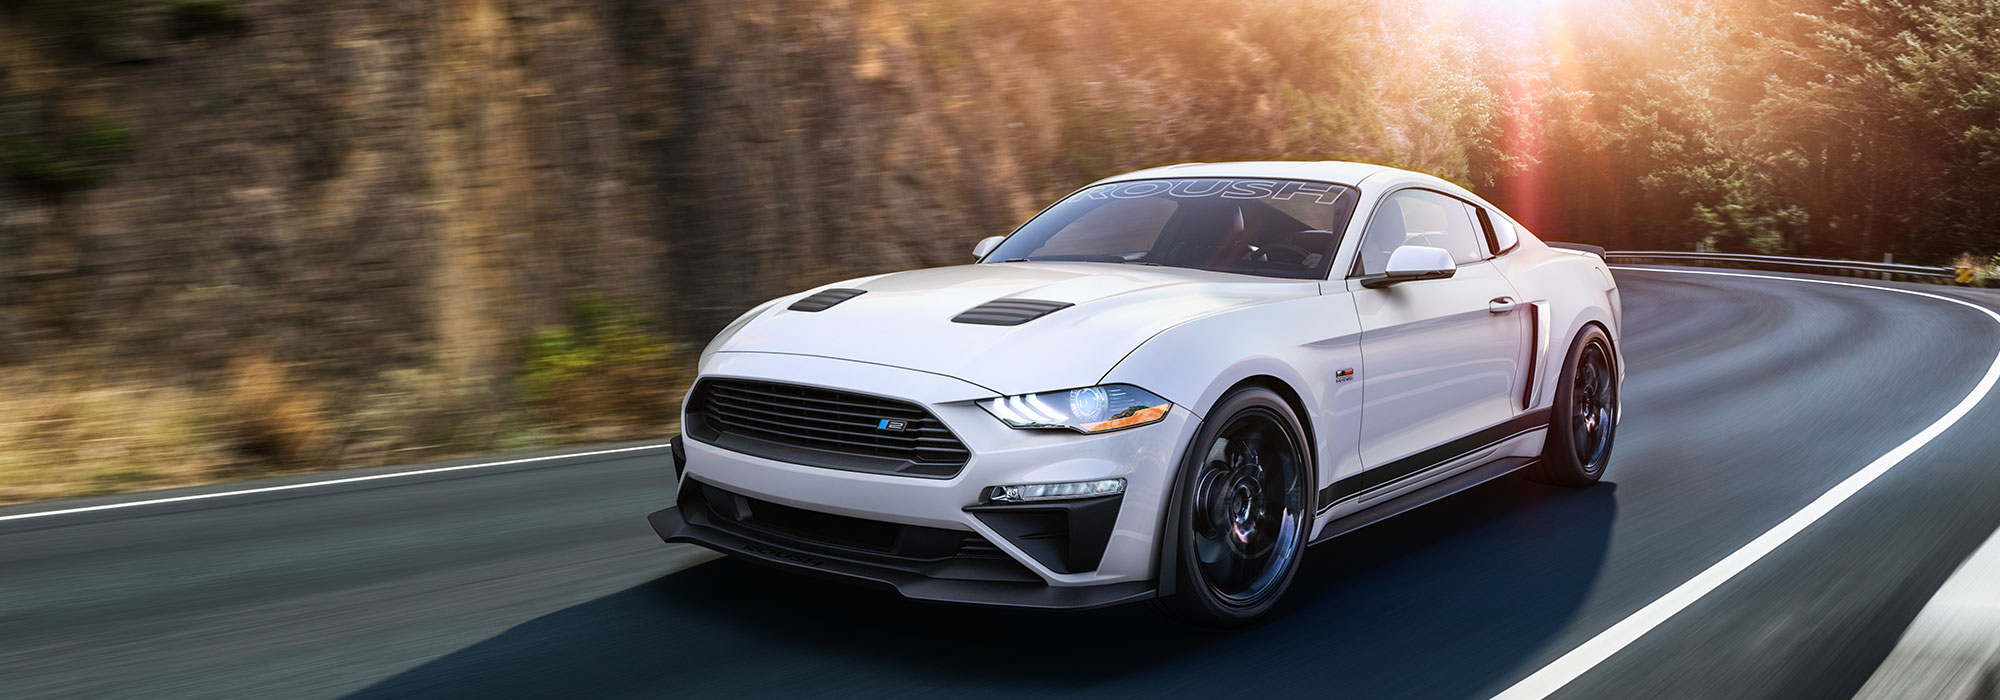 2019 ROUSH Stage 2 Mustang